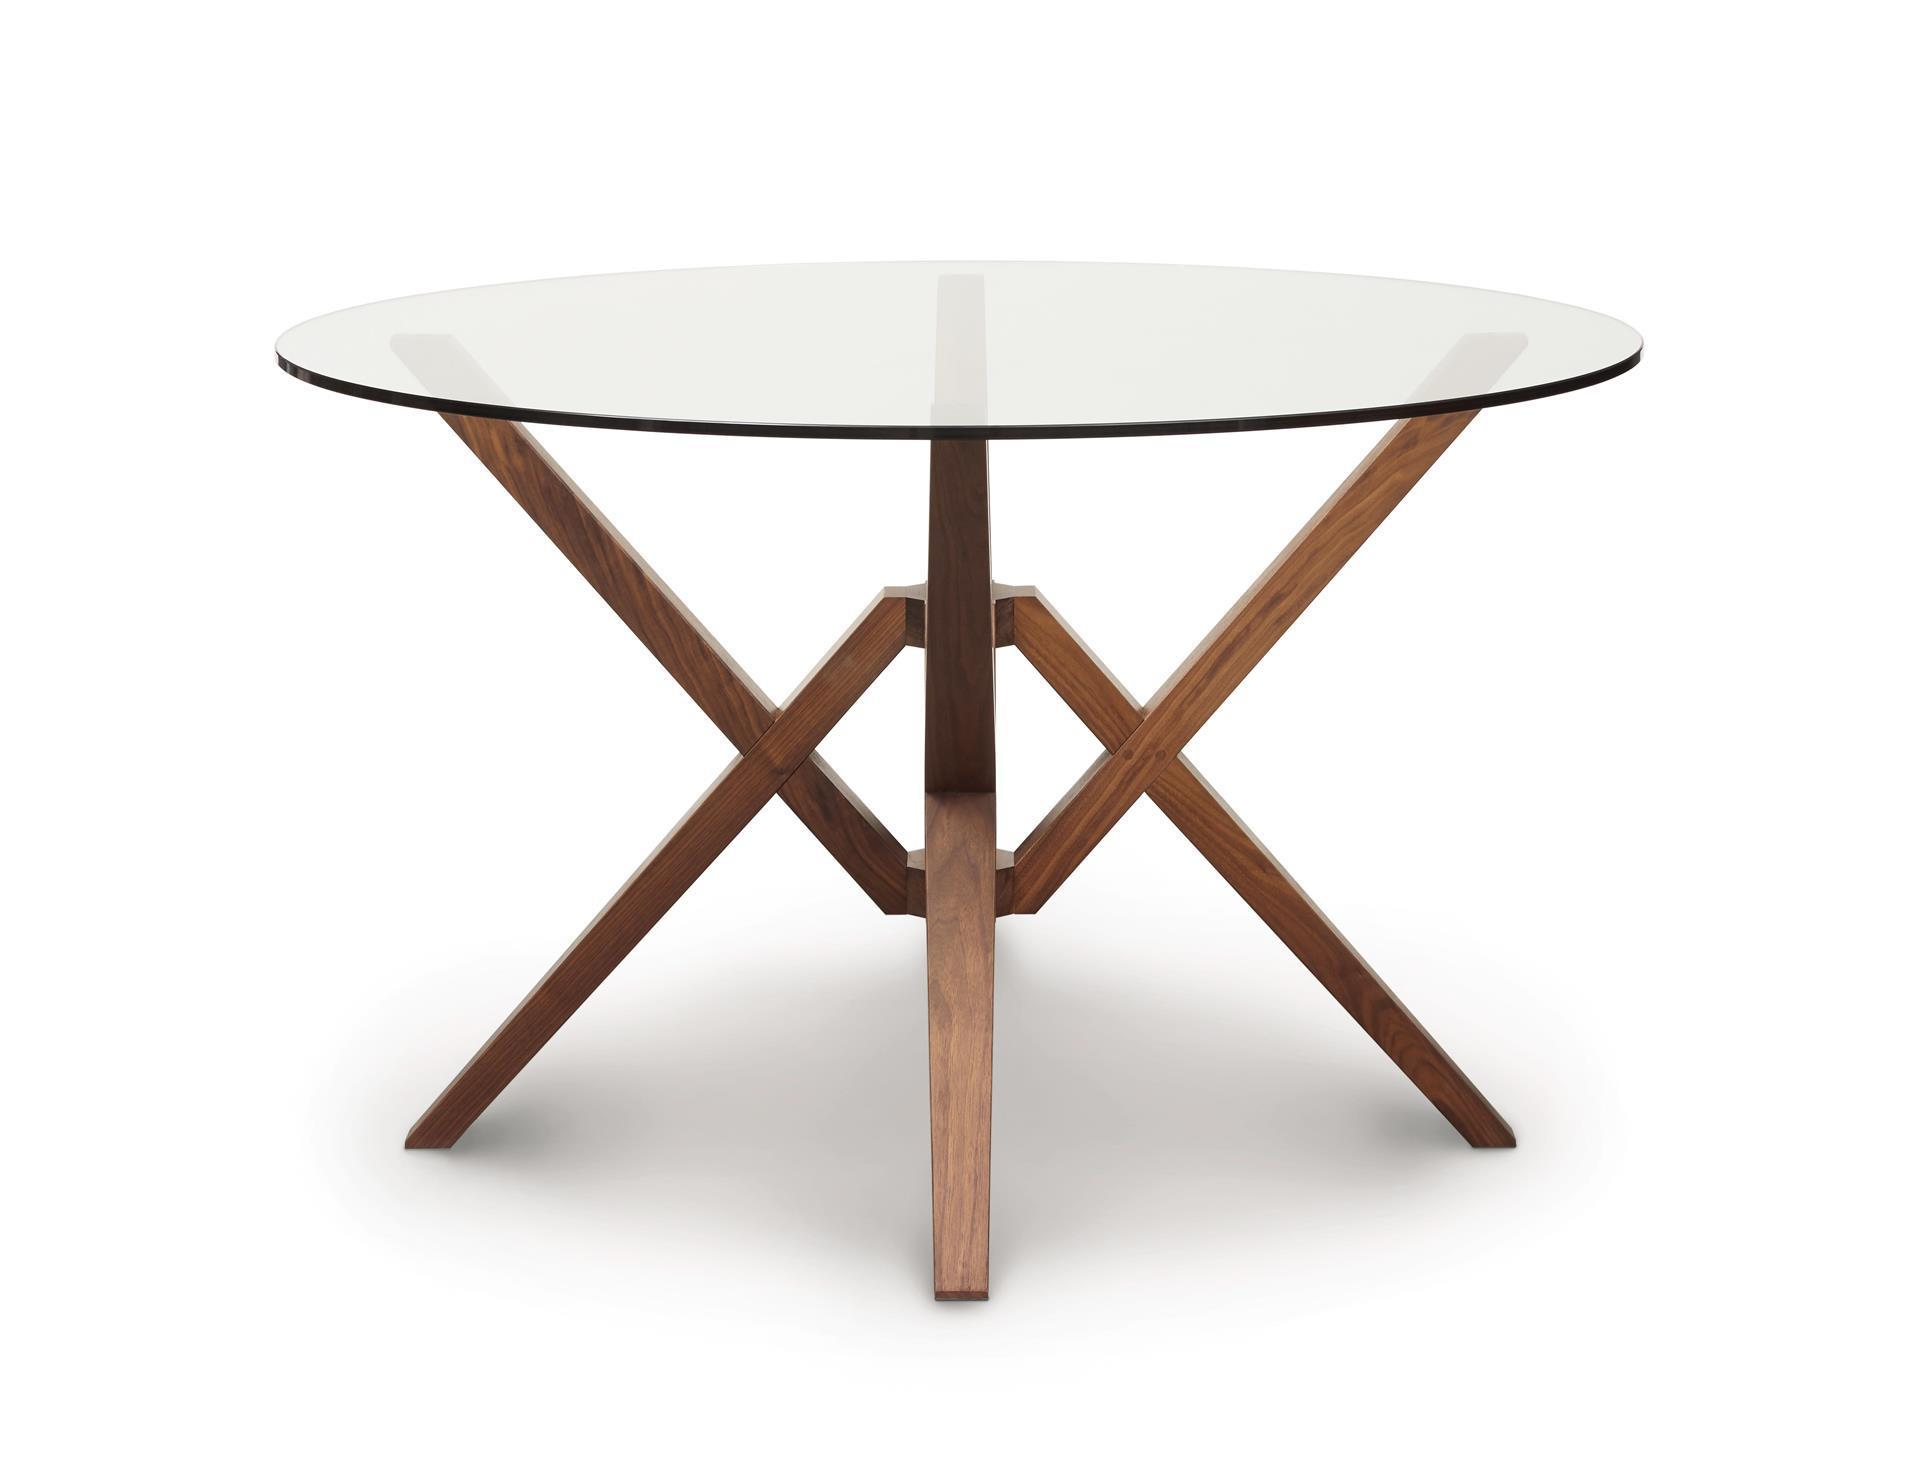 Copeland exeter round glass top dining table